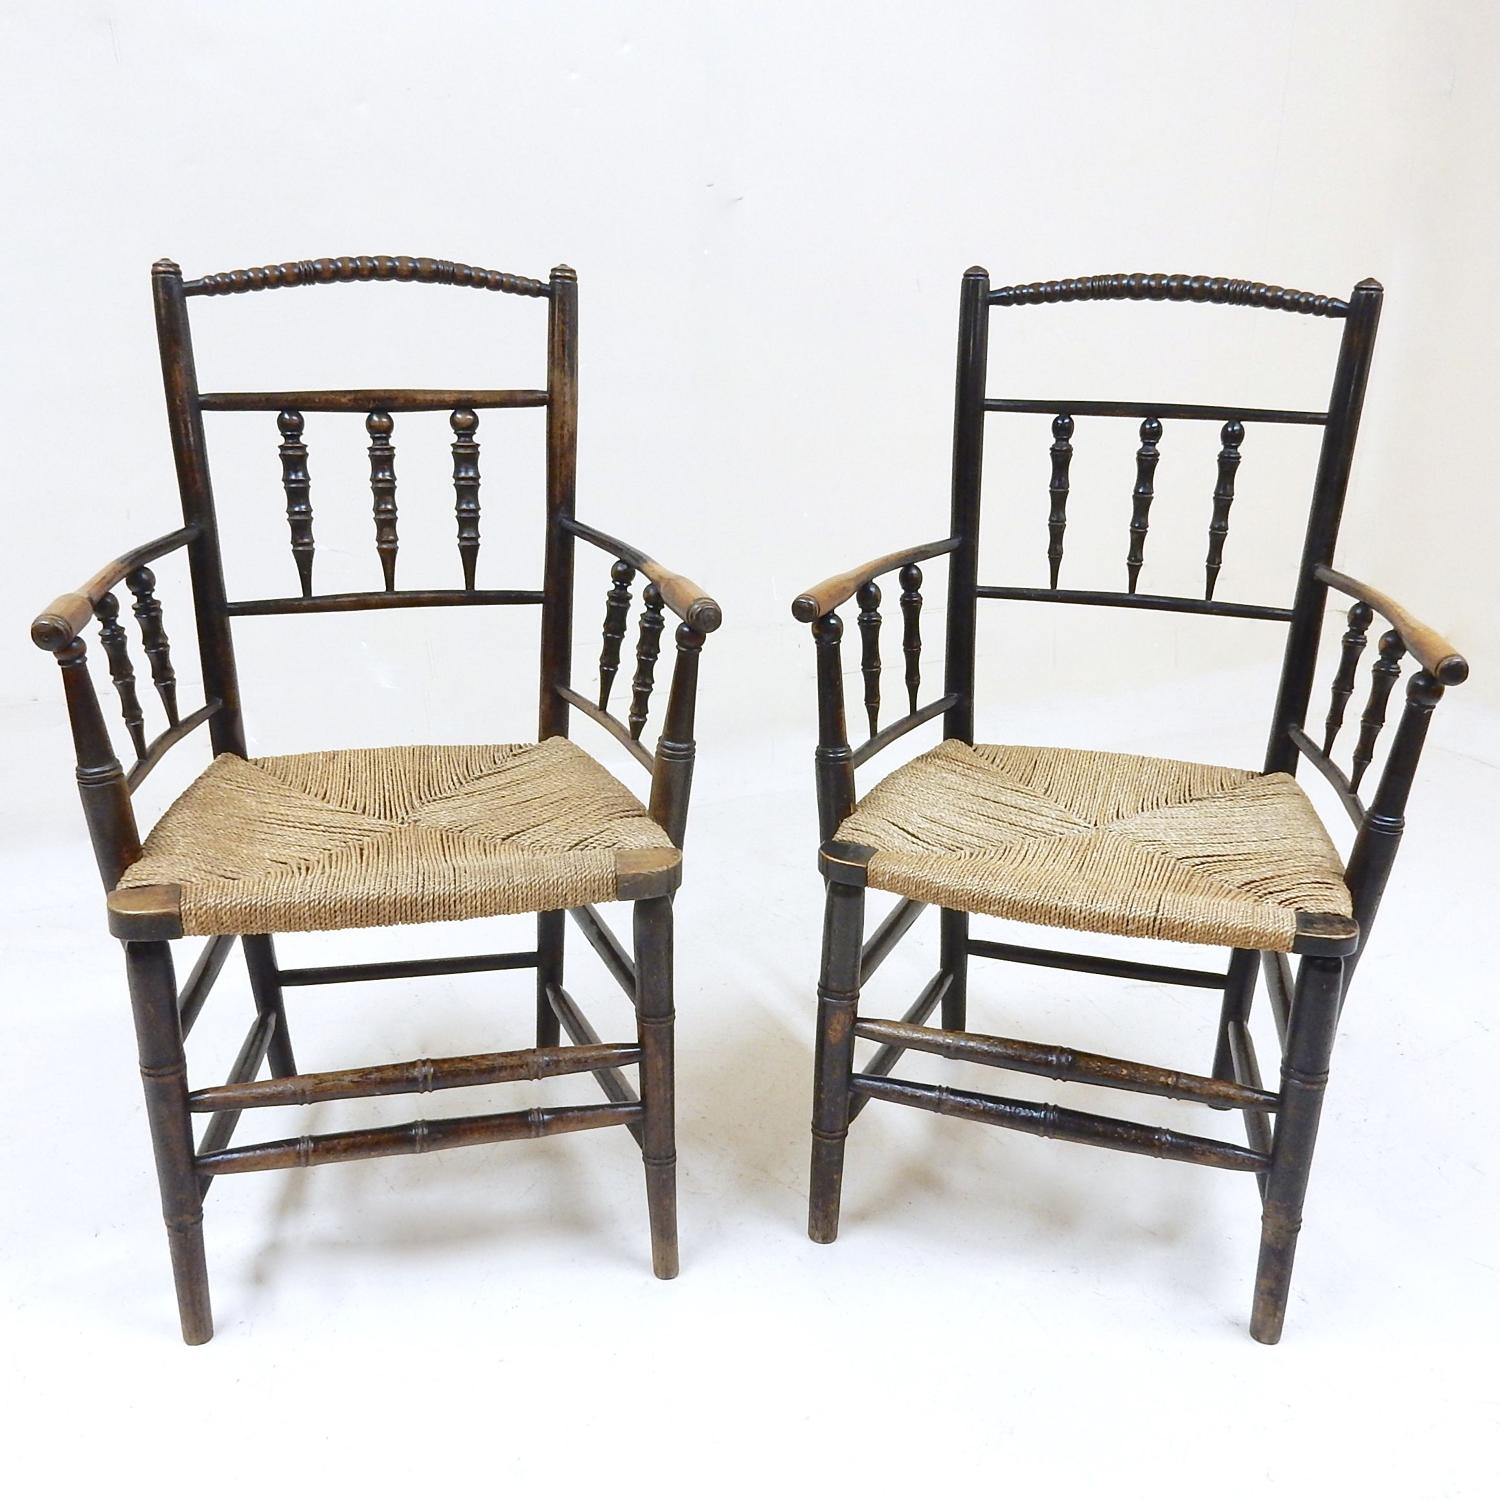 William Morris Armchairs